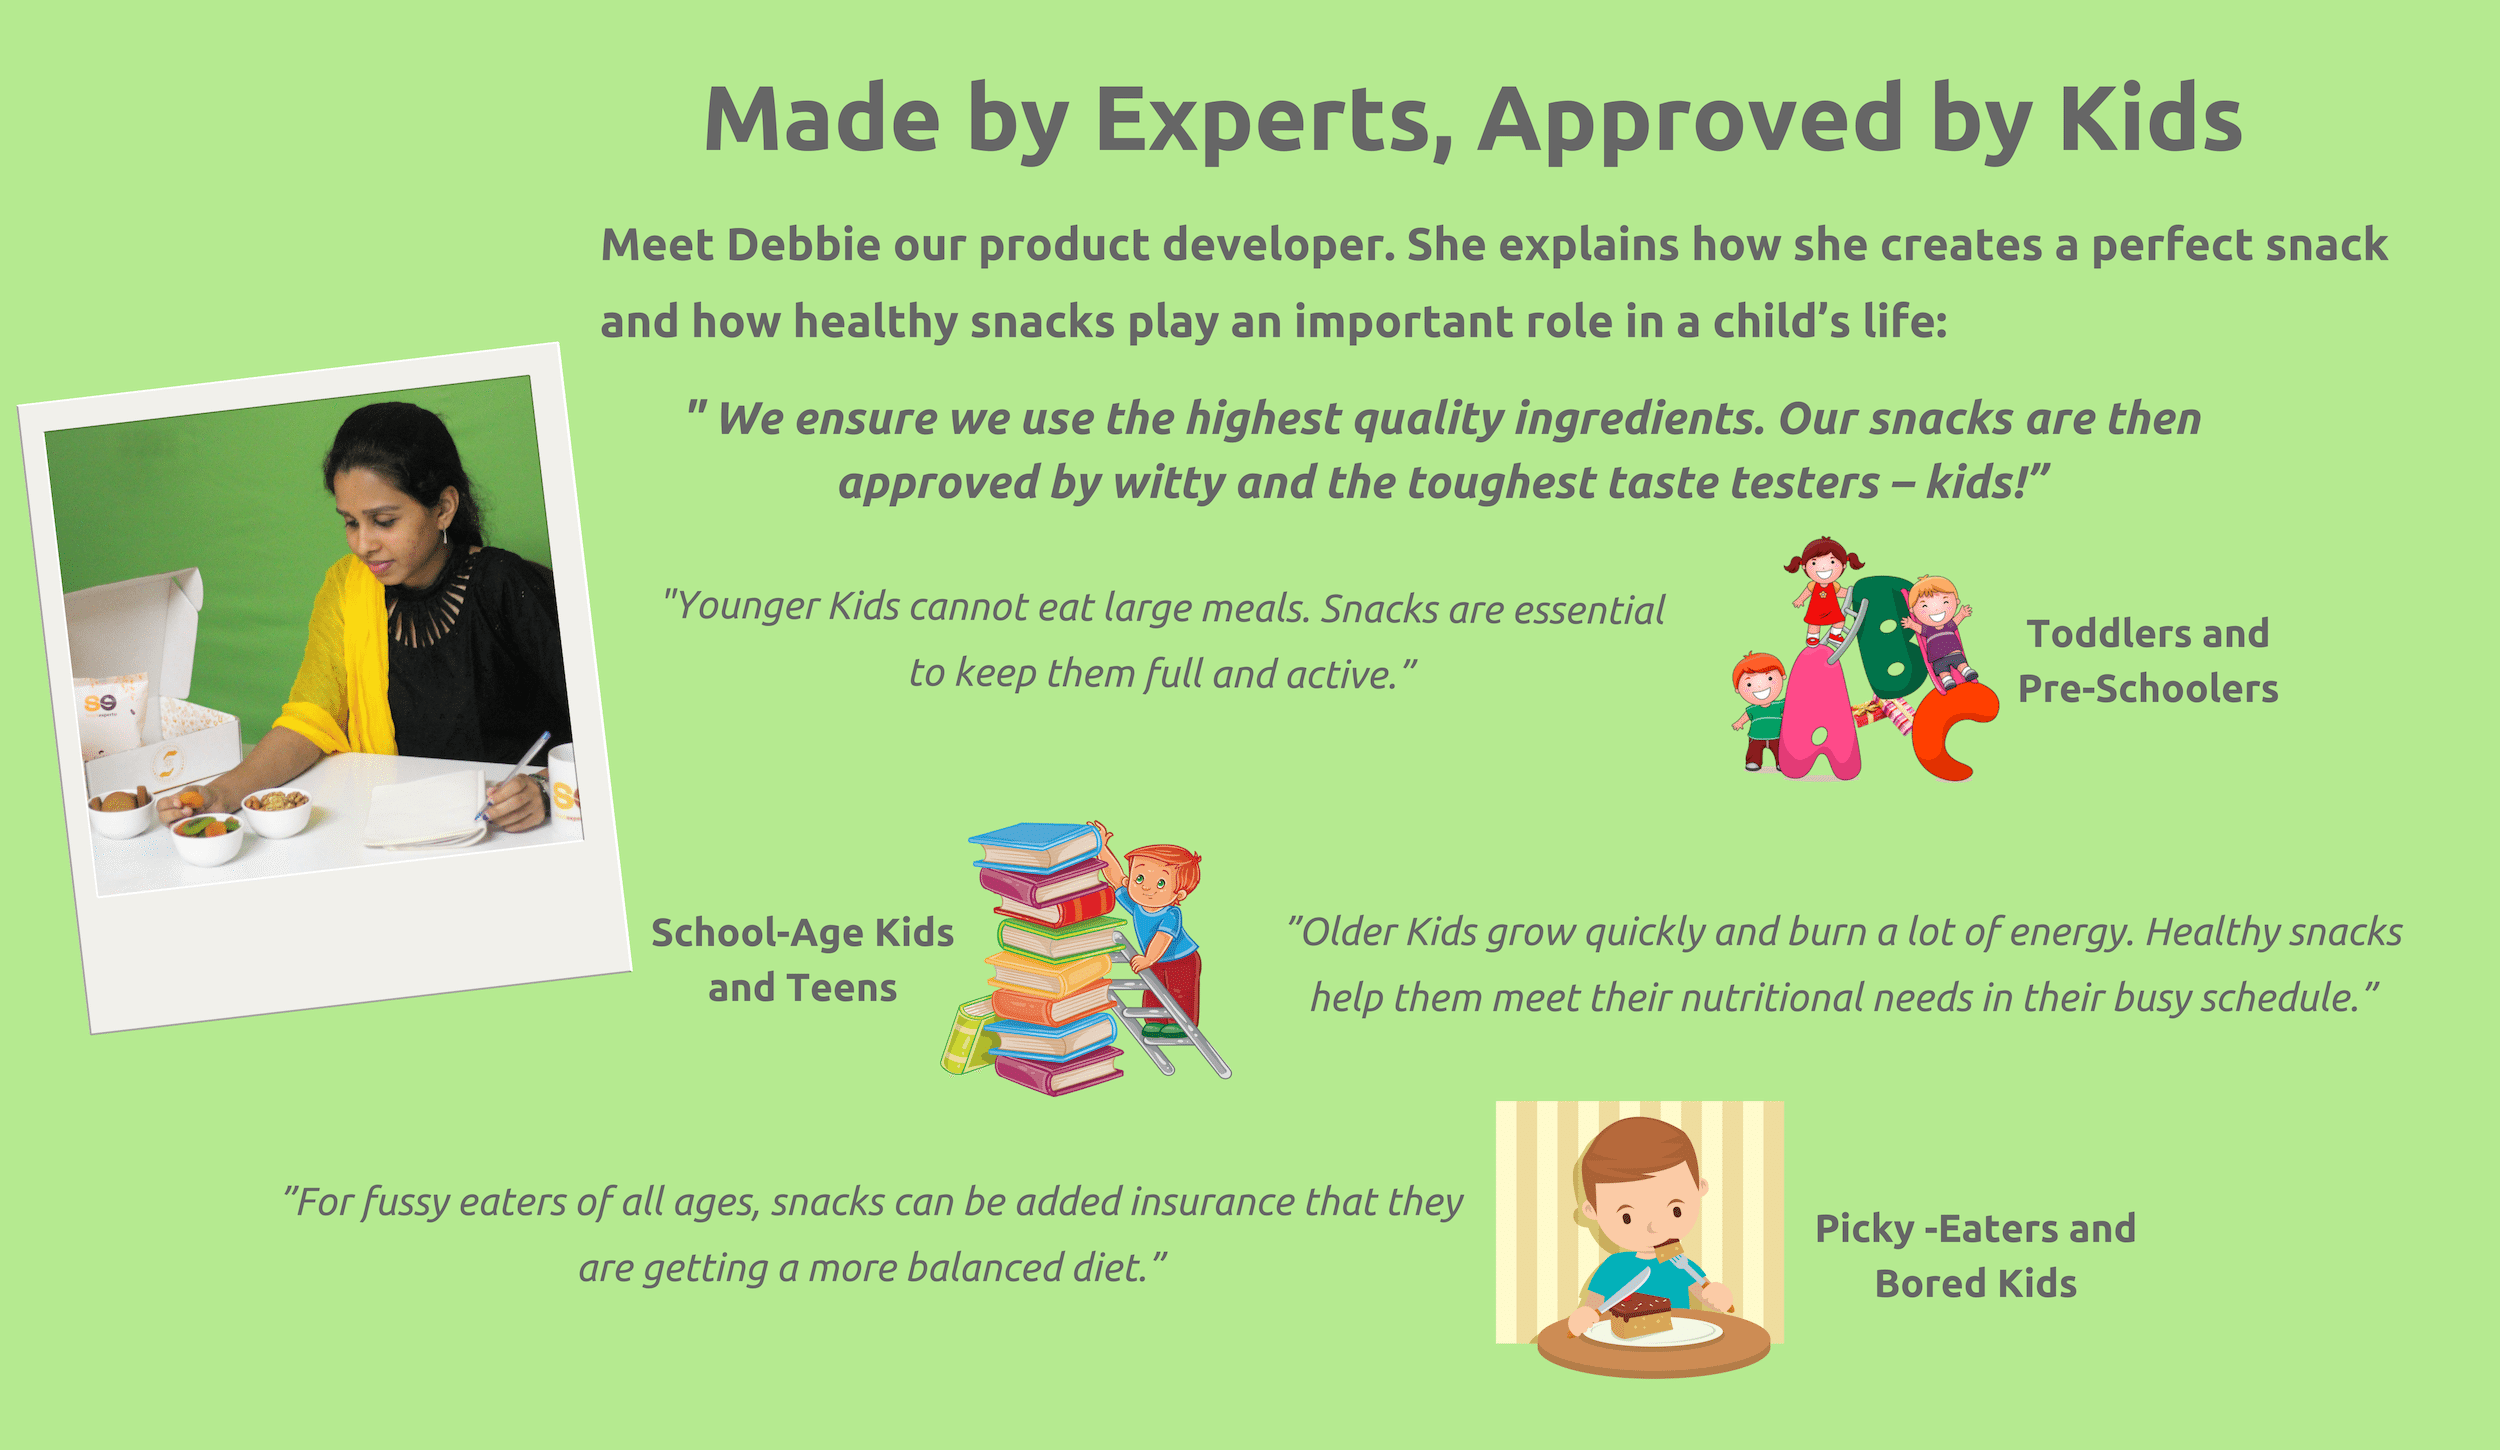 Made by Experts, Approved by Kids